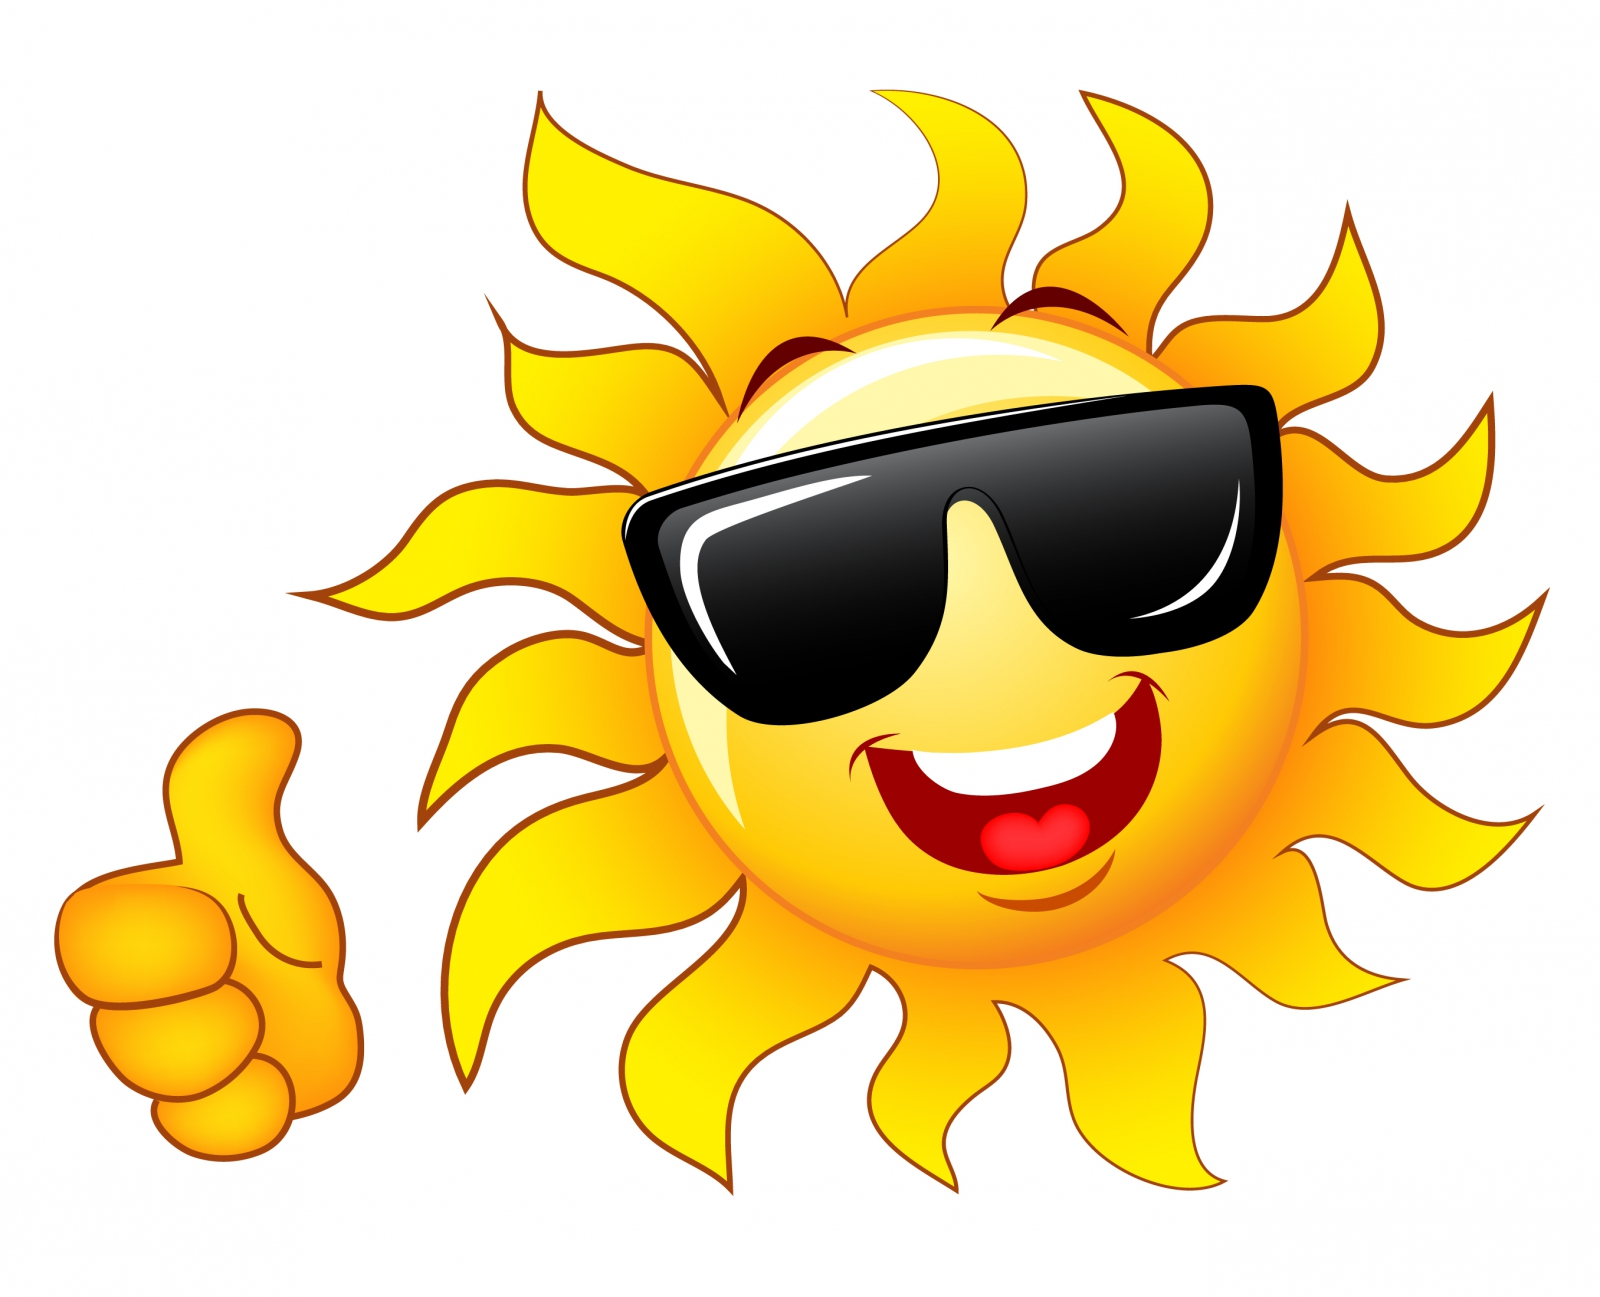 Smiley With Sunglasses Stock Vectorclipart Free Clip Art Images